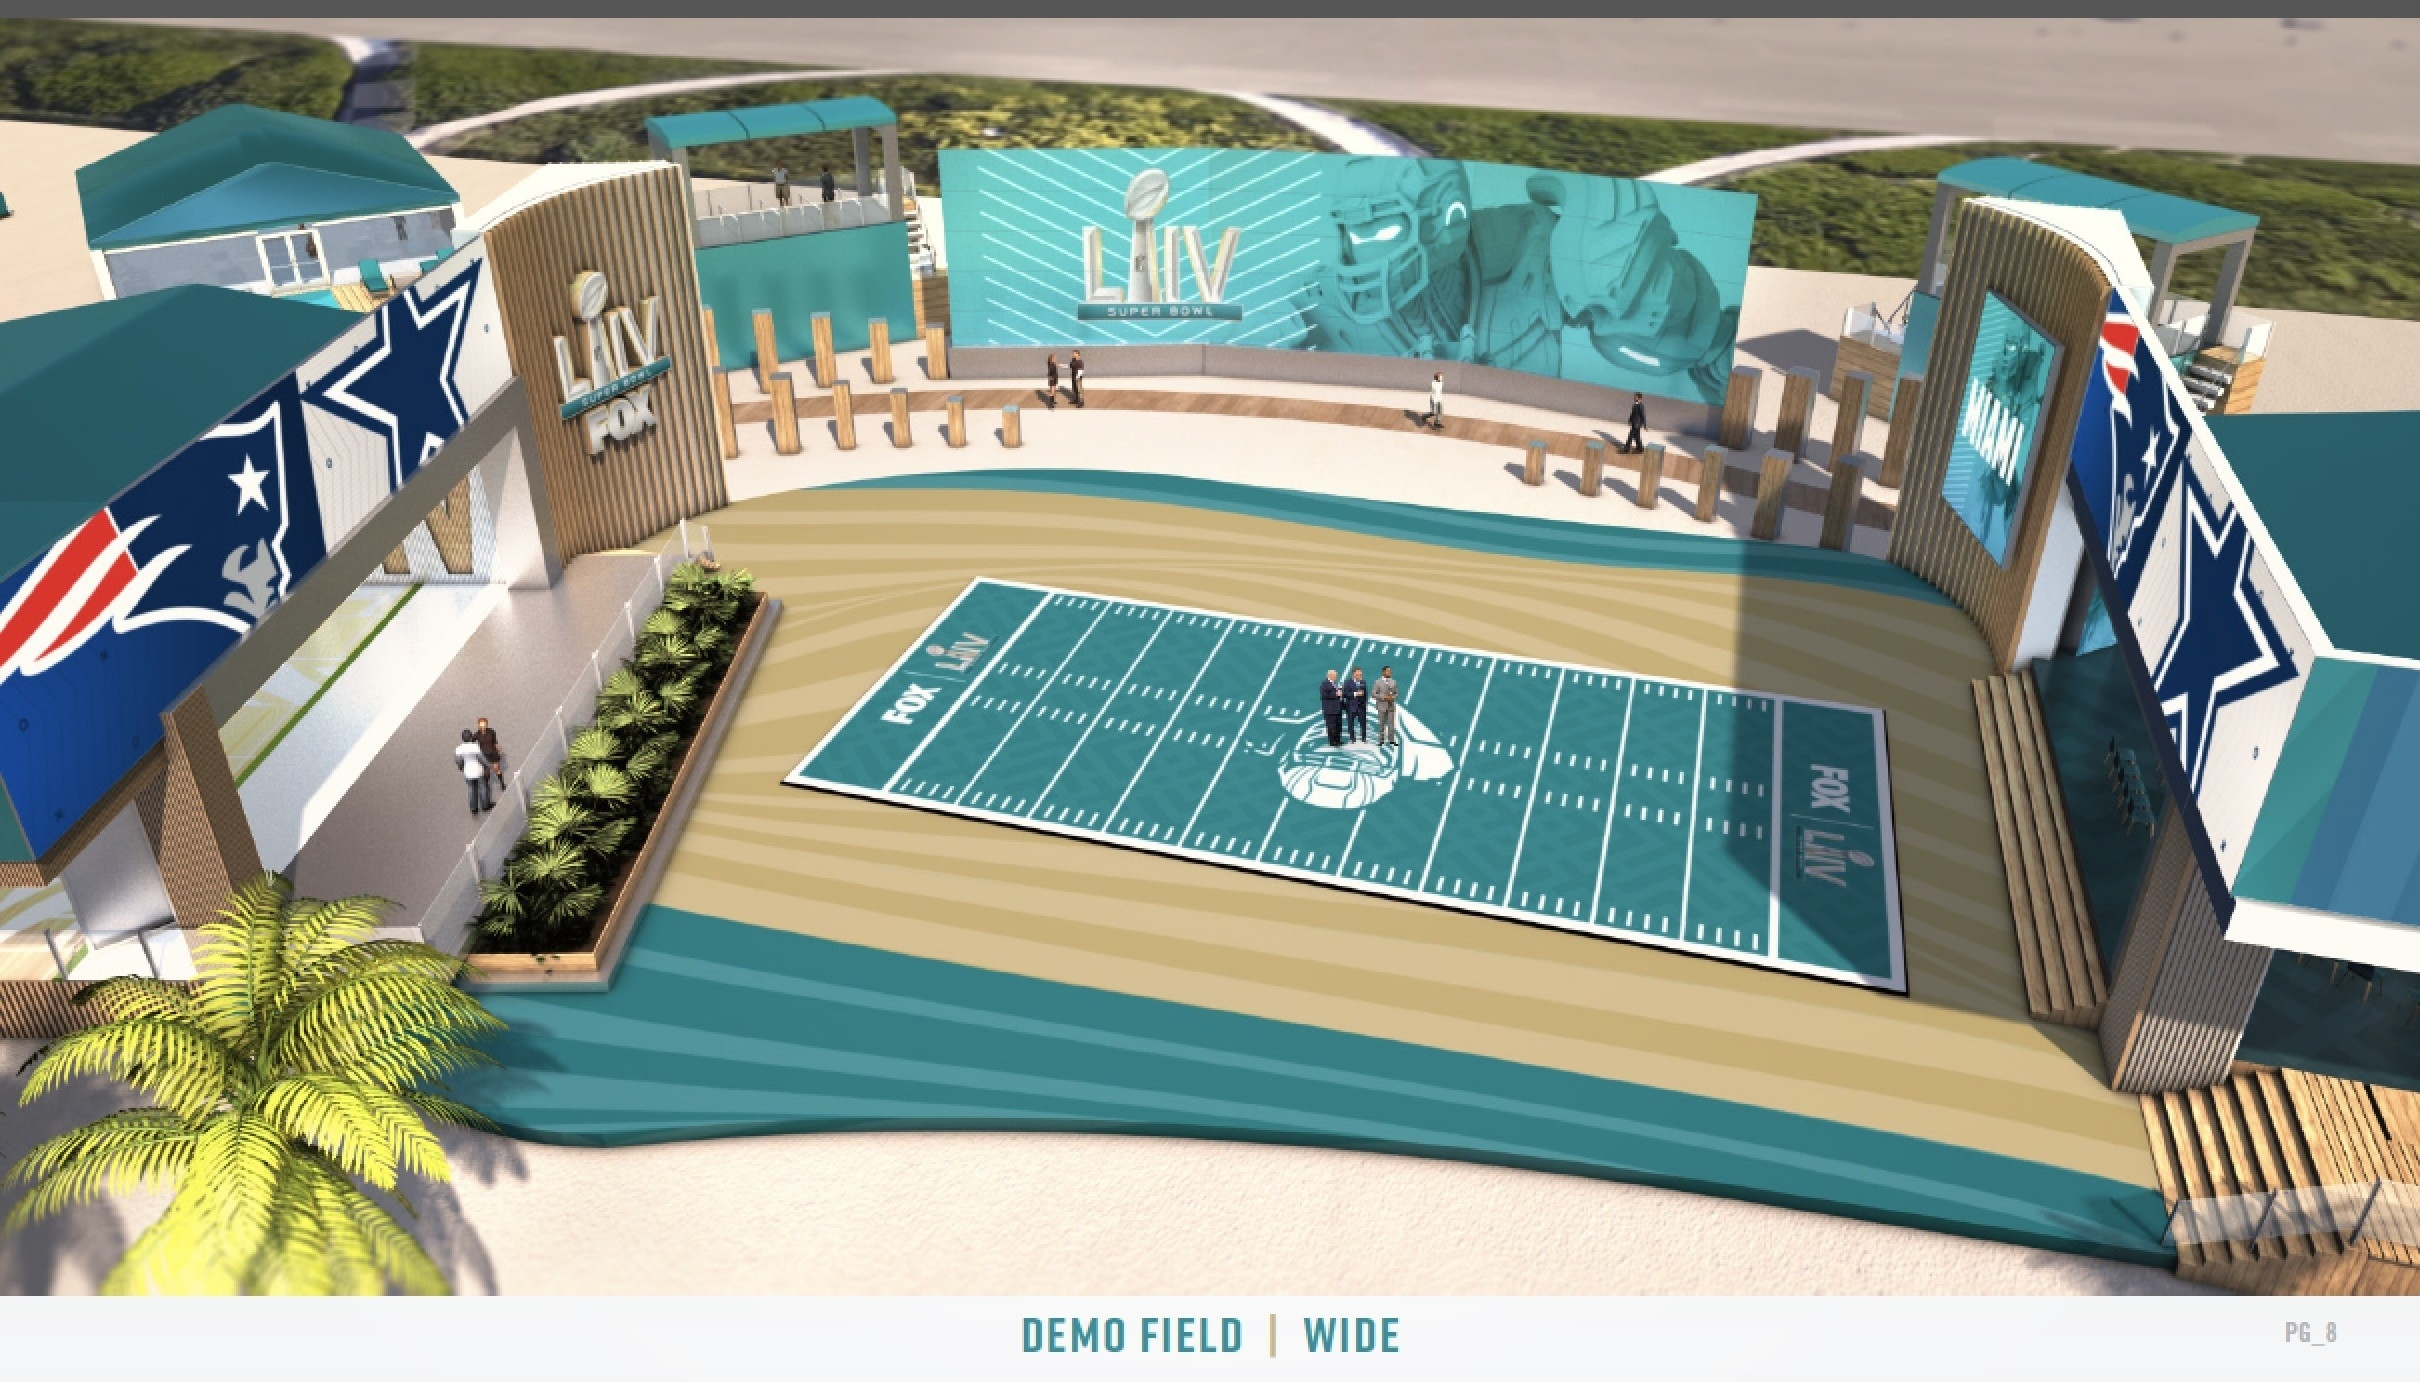 The Super Bowl Is Going To Be Big But How Big For Miami intended for Super Bowl Miami Hotels